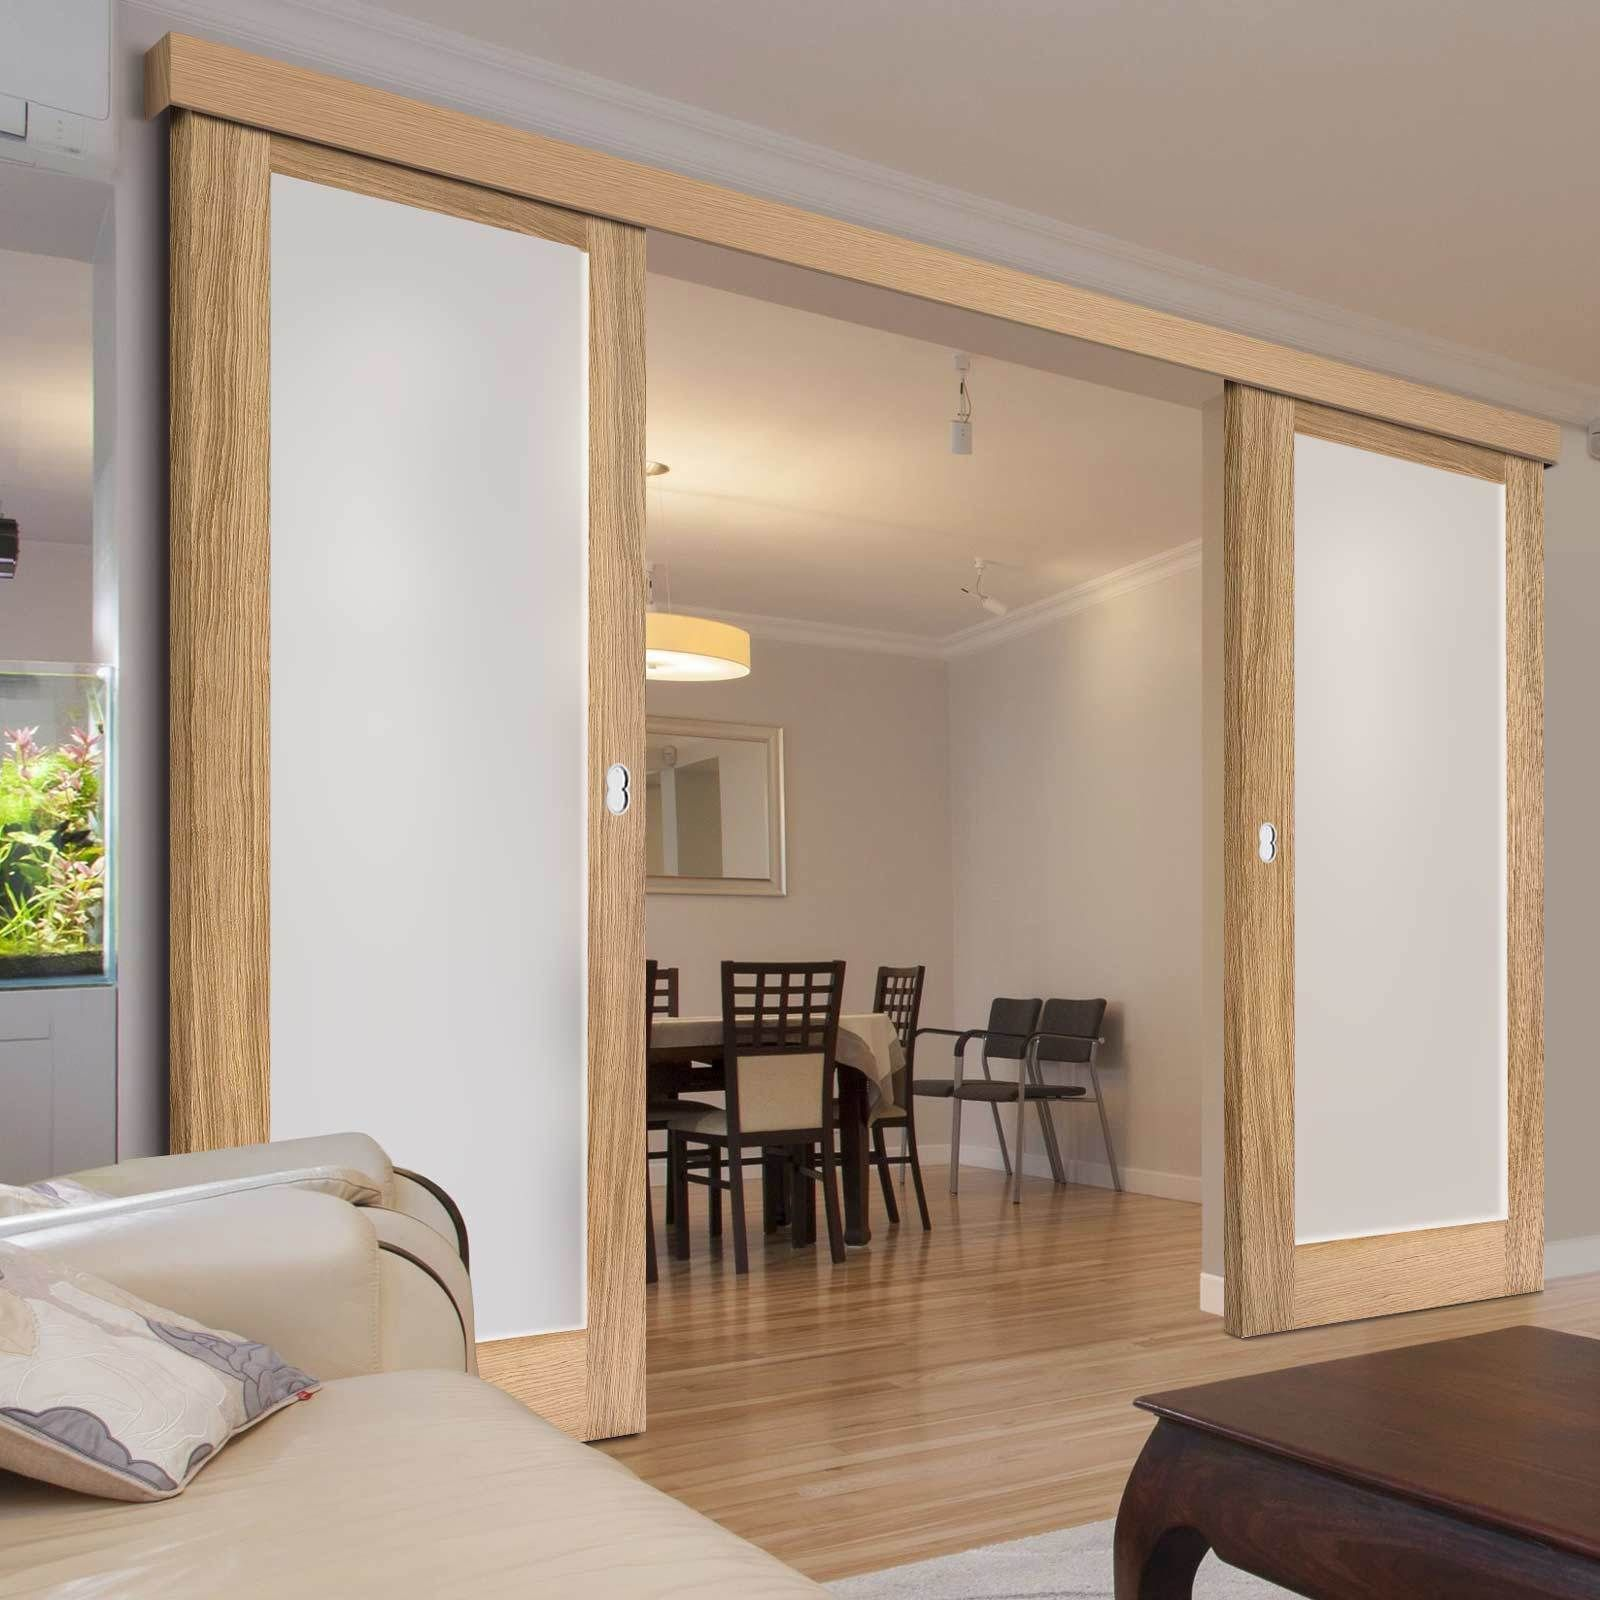 Double Sliding Door Wall Track Pattern 10 Oak Doors Frosted Glass Unfinished Double Sliding Doors Sliding Doors Oak Doors